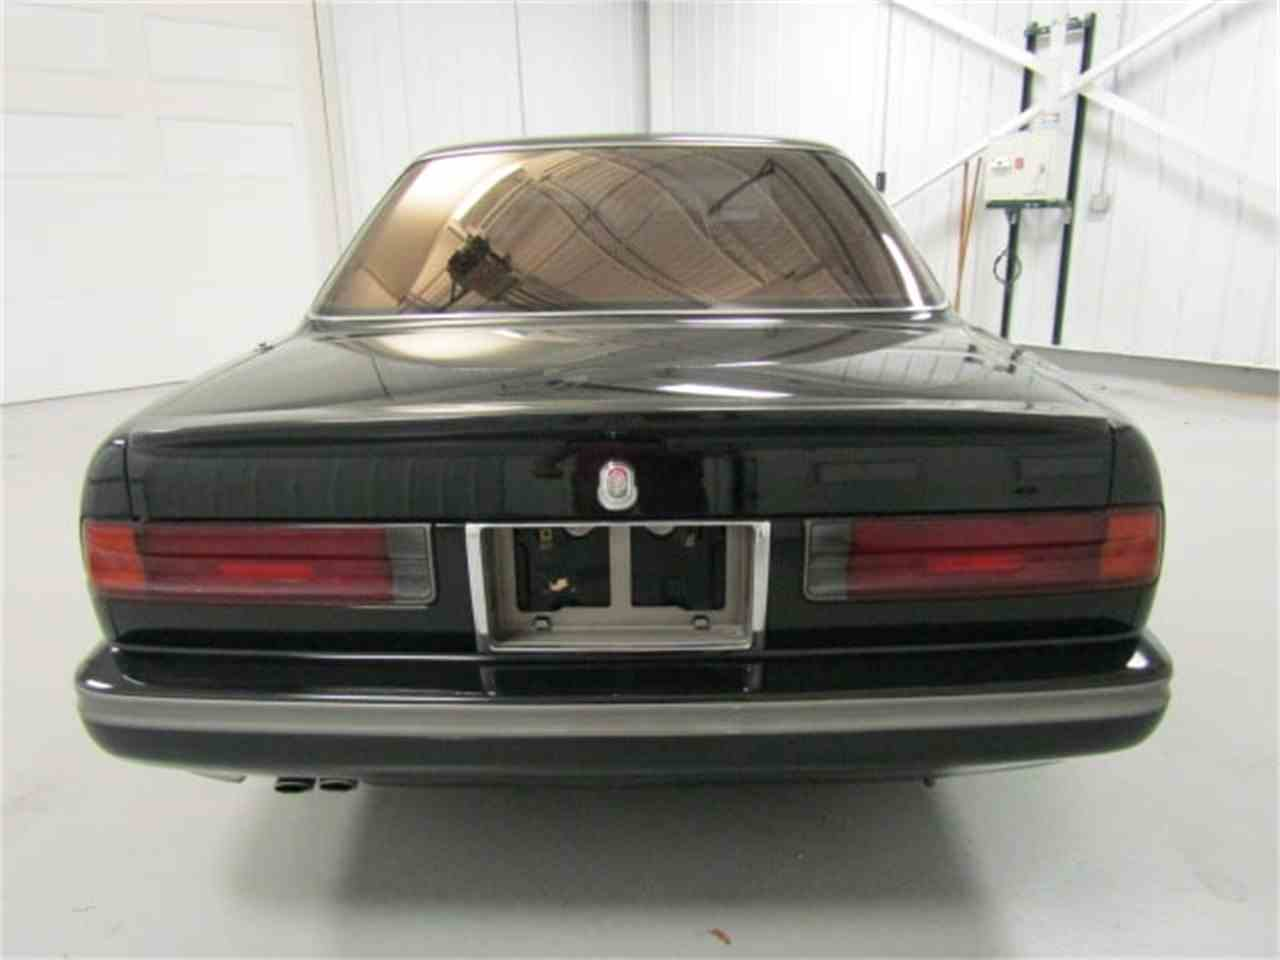 Large Picture of '90 Nissan Cima located in Virginia - $5,990.00 - JLDM